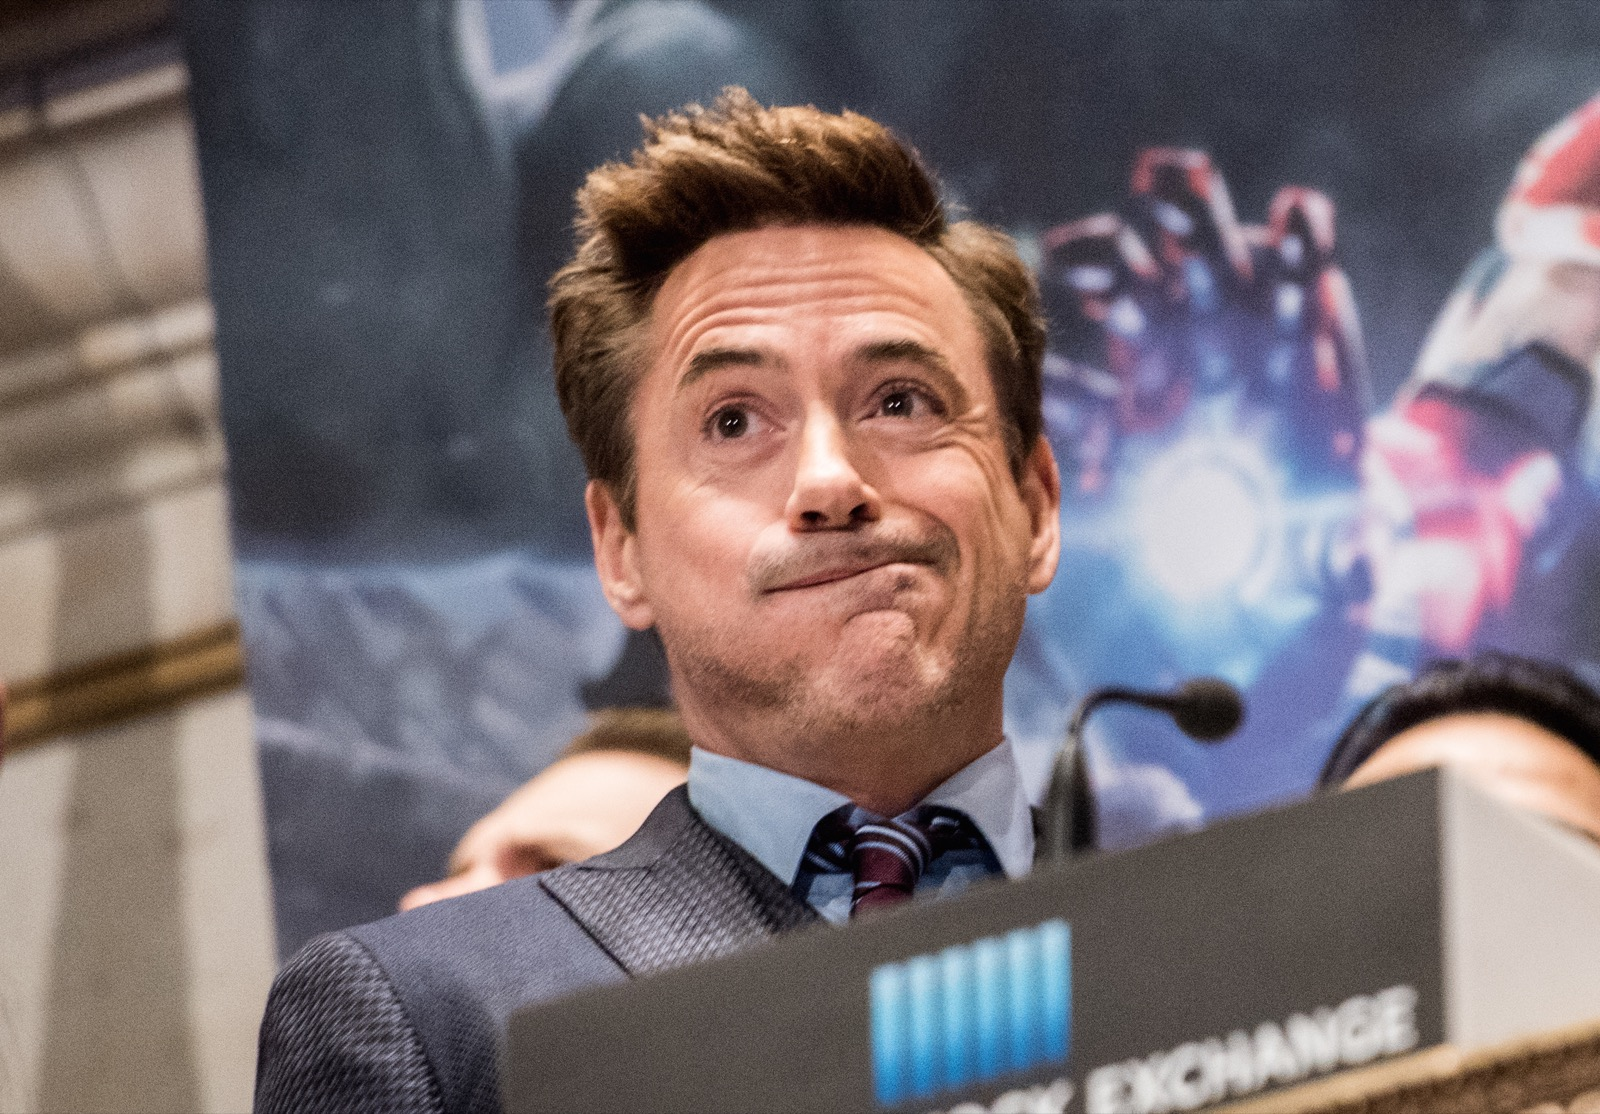 Robert Downey Jr. rings the opening bell at New York Stock Exchange, April 27, in New York. Noam Galai/WireImage/Getty Images